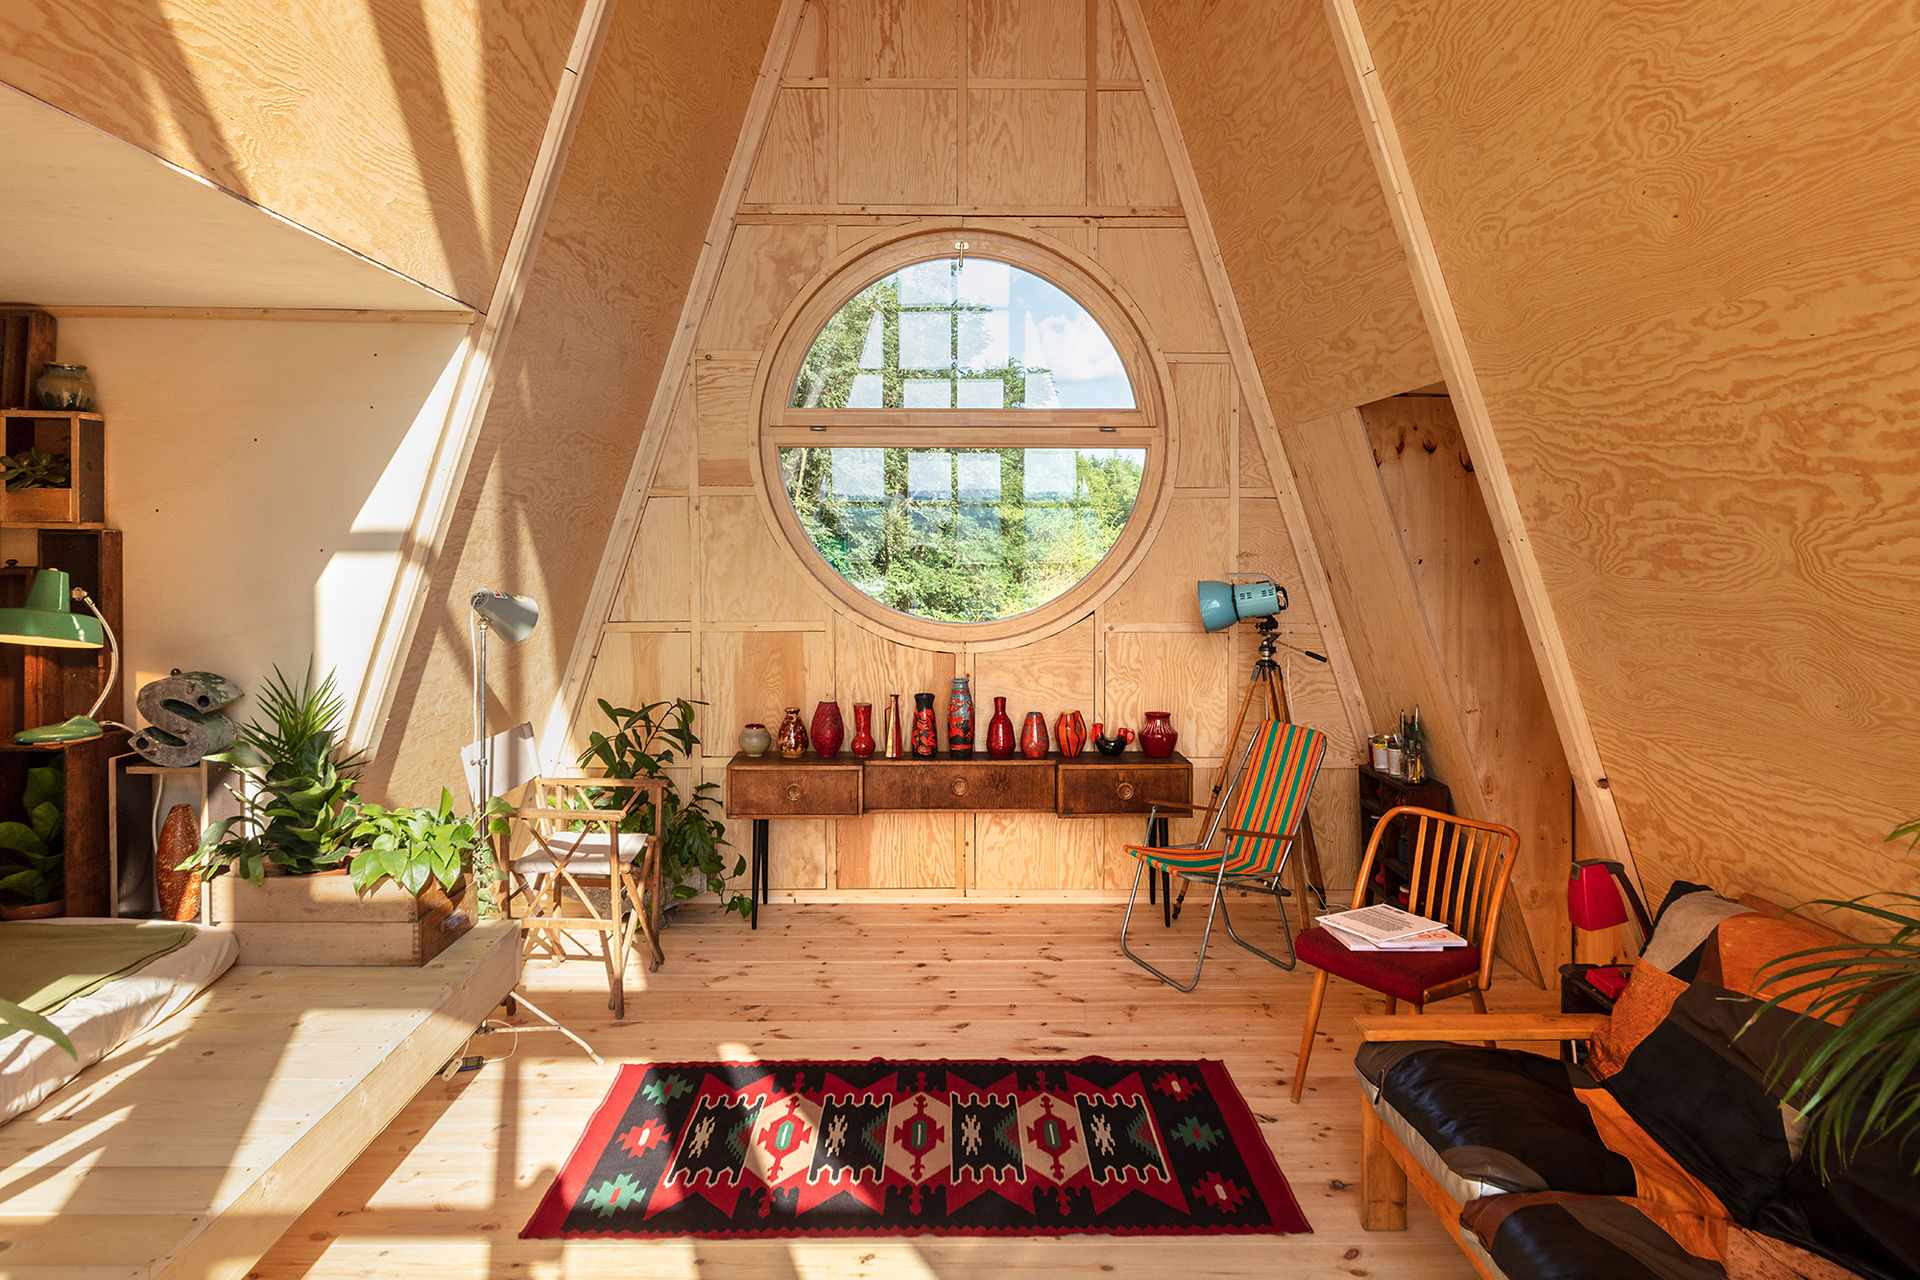 Spacious-interior-of-the-cabin-adapts-to-the-changing-needs-of-its-residents-27592